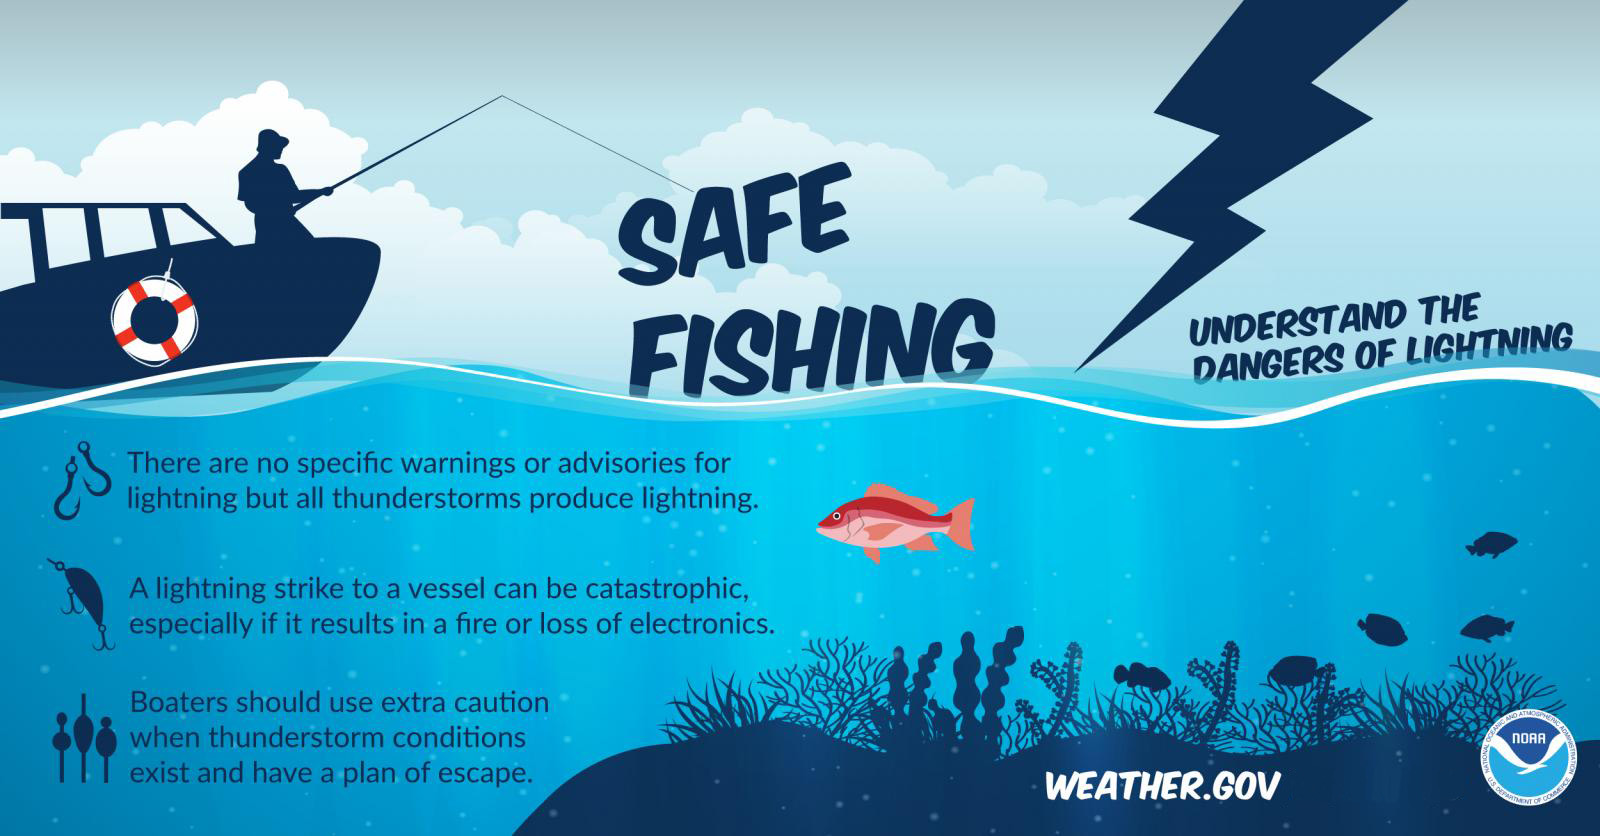 Safe Fishing: Understand the dangers of lightning. There are no specific warnings or advisories for lightning but all thunderstorms produce lightning. A lightning strike to a vessel can be catastrophic, especially if it results in a fire or loss of electronics. Boaters should use extra caution when thunderstorm conditions exist and have a plan of escape.